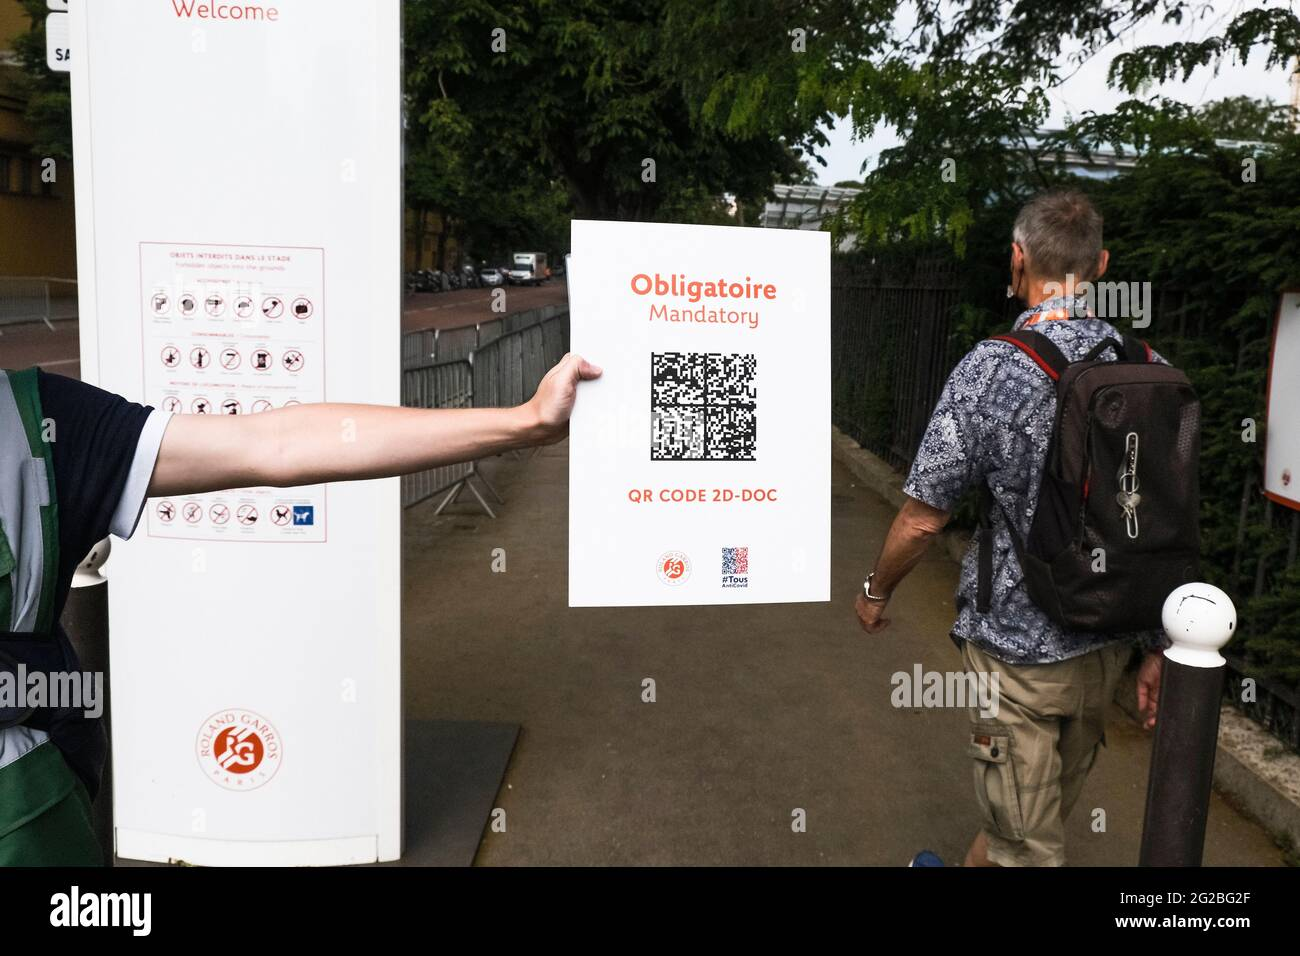 Paris, France. 10th June, 2021. Tennis: Grand Slam, French Open. An employee holds a sign at the entrance to remind spectators of a valid Corona test or vaccination. By means of a QR code, access to the tournament site is controlled in this way. Since the new Corona rules on June 9, 2021, more people are allowed back into the Stade Roland Garros. As the curfew in Paris now only starts at 11pm, 5000 spectators will also be allowed onto Centre Court. Credit: Frank Molter/dpa/Alamy Live News Stock Photo